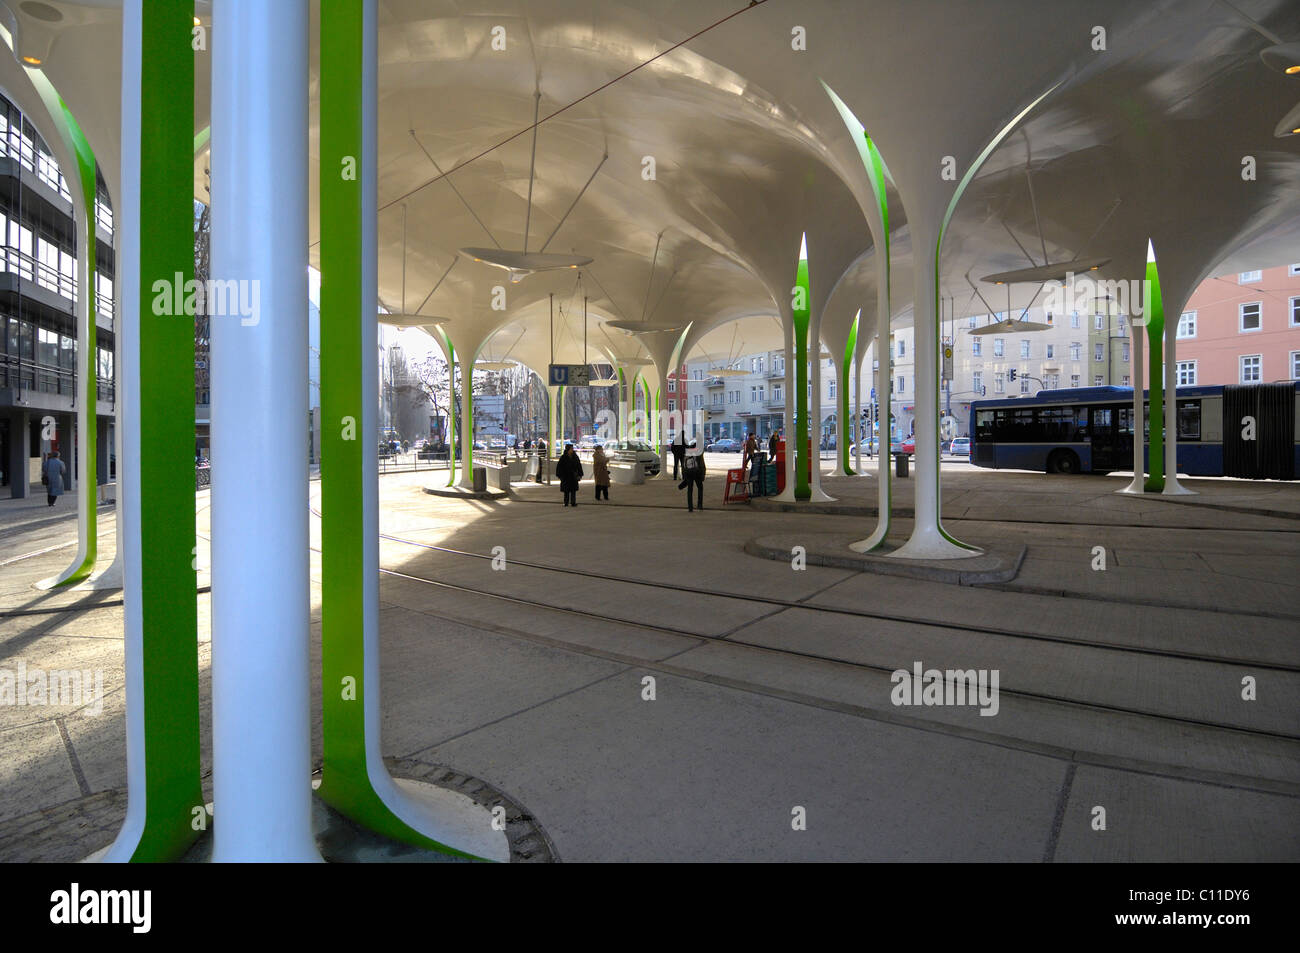 New stop of Tram 23, Muenchner Freiheit, Schwabing, Munich, Bavaria, Germany, Europe - Stock Image